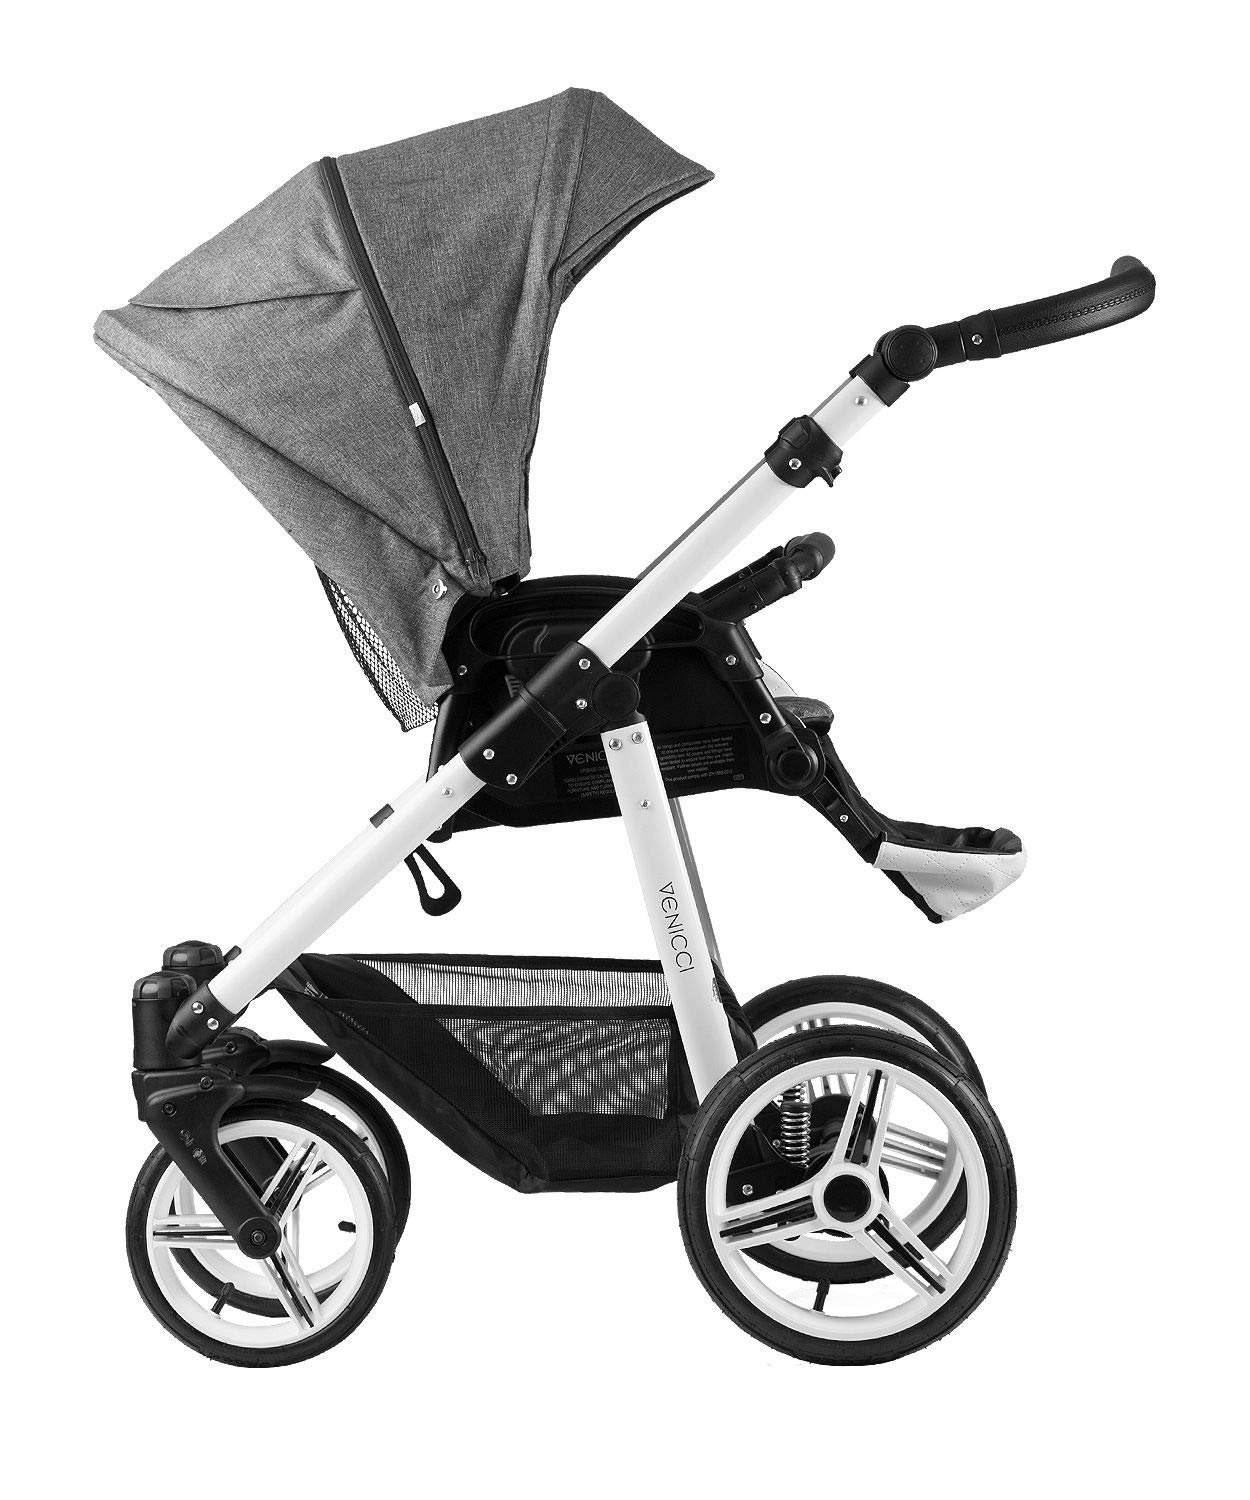 Venicci Pure 3-in-1 Travel System - Denim Grey - with Carrycot + Car Seat + Changing Bag + Apron + Raincover + Mosquito Net + 5-Point Harness and UV 50+ Fabric + Car Seat Adapters + Cup Holder Venicci 3 in 1 Travel System with included Group 0+ Car Seat Suitable for your baby from birth until 36 months 5-point harness to enhance the safety of your child 3